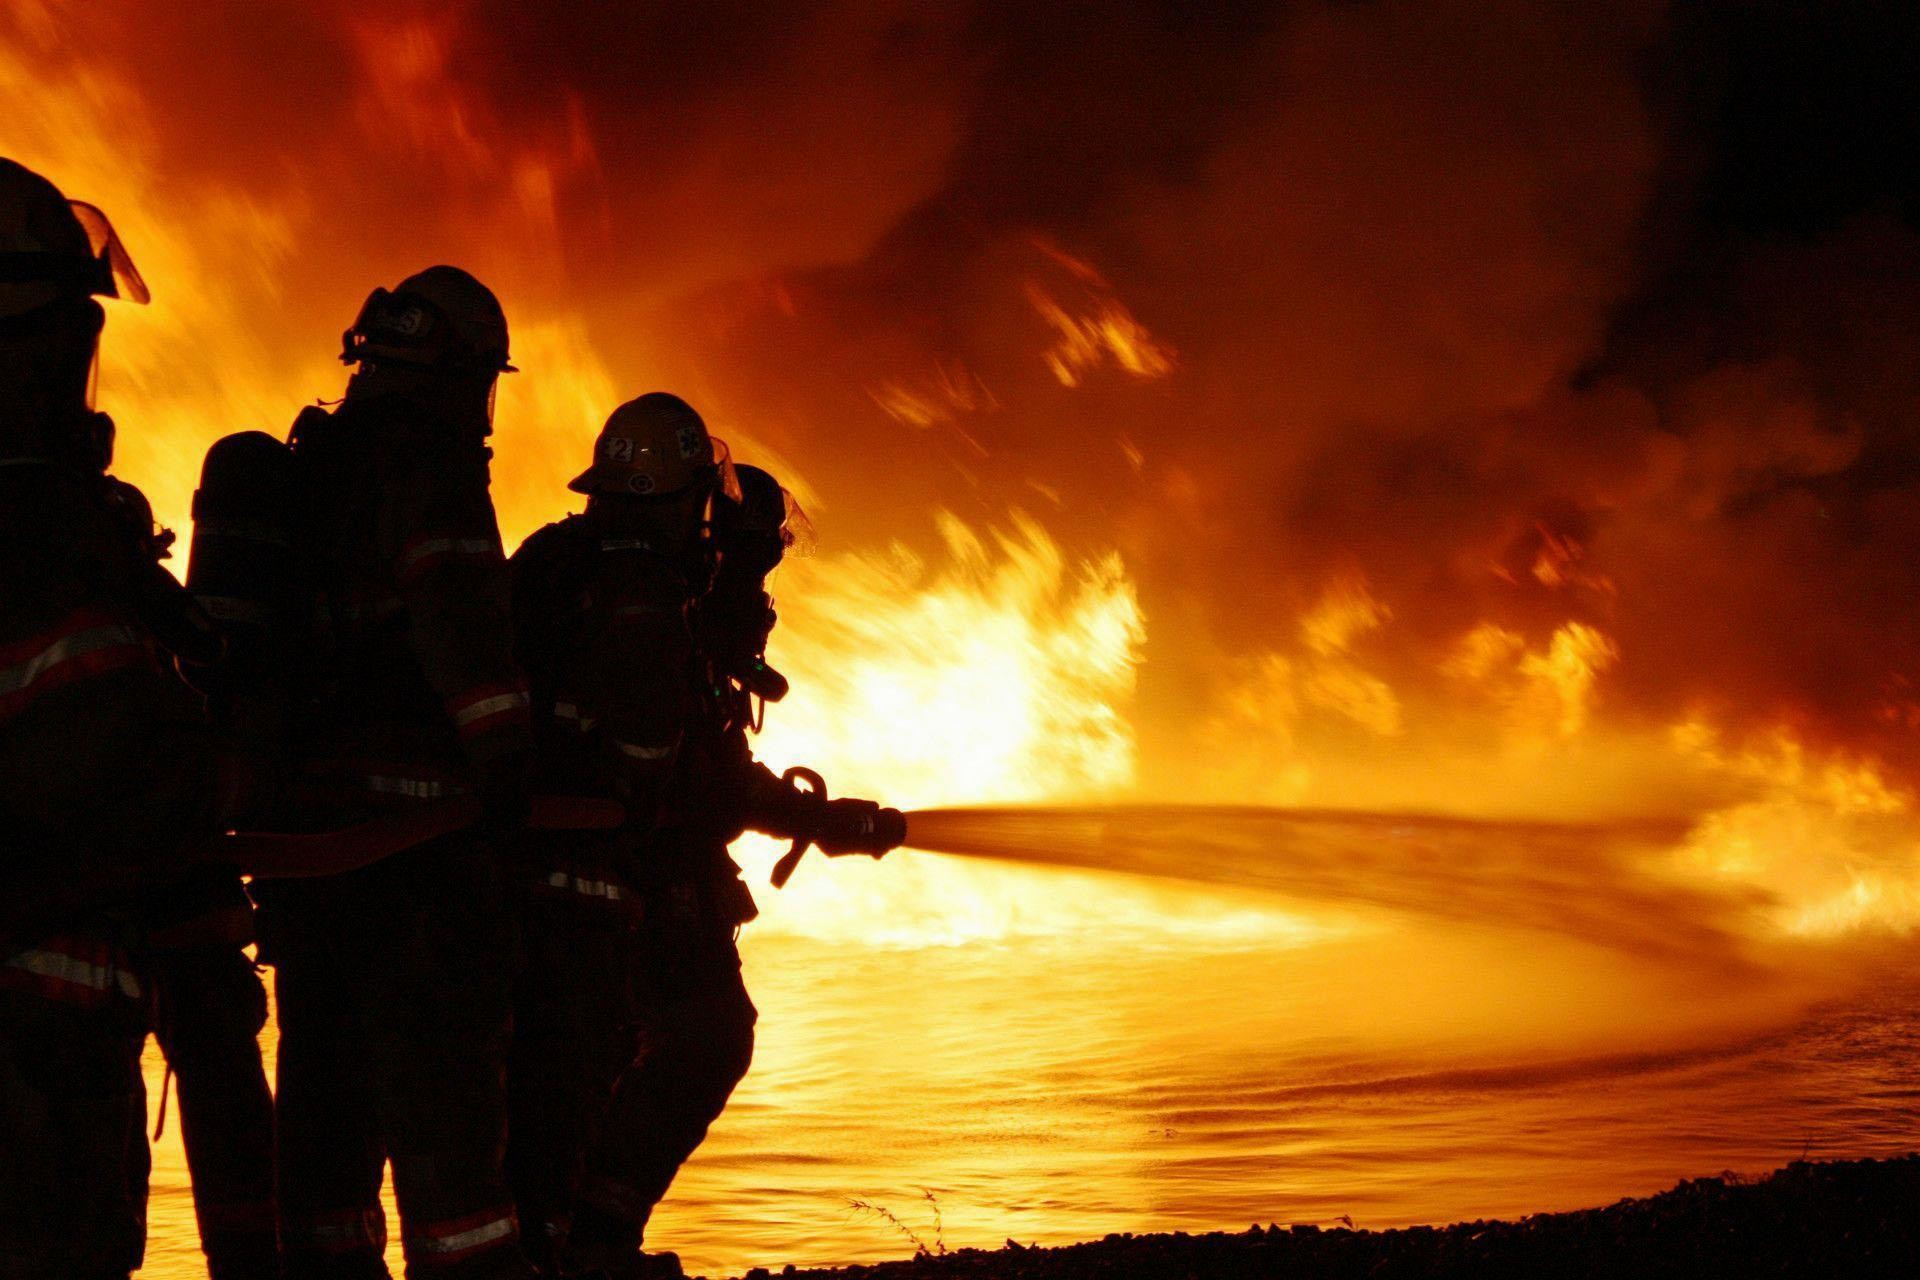 1920x1280 Wallpaperwiki Download Free Images Fire Department HD